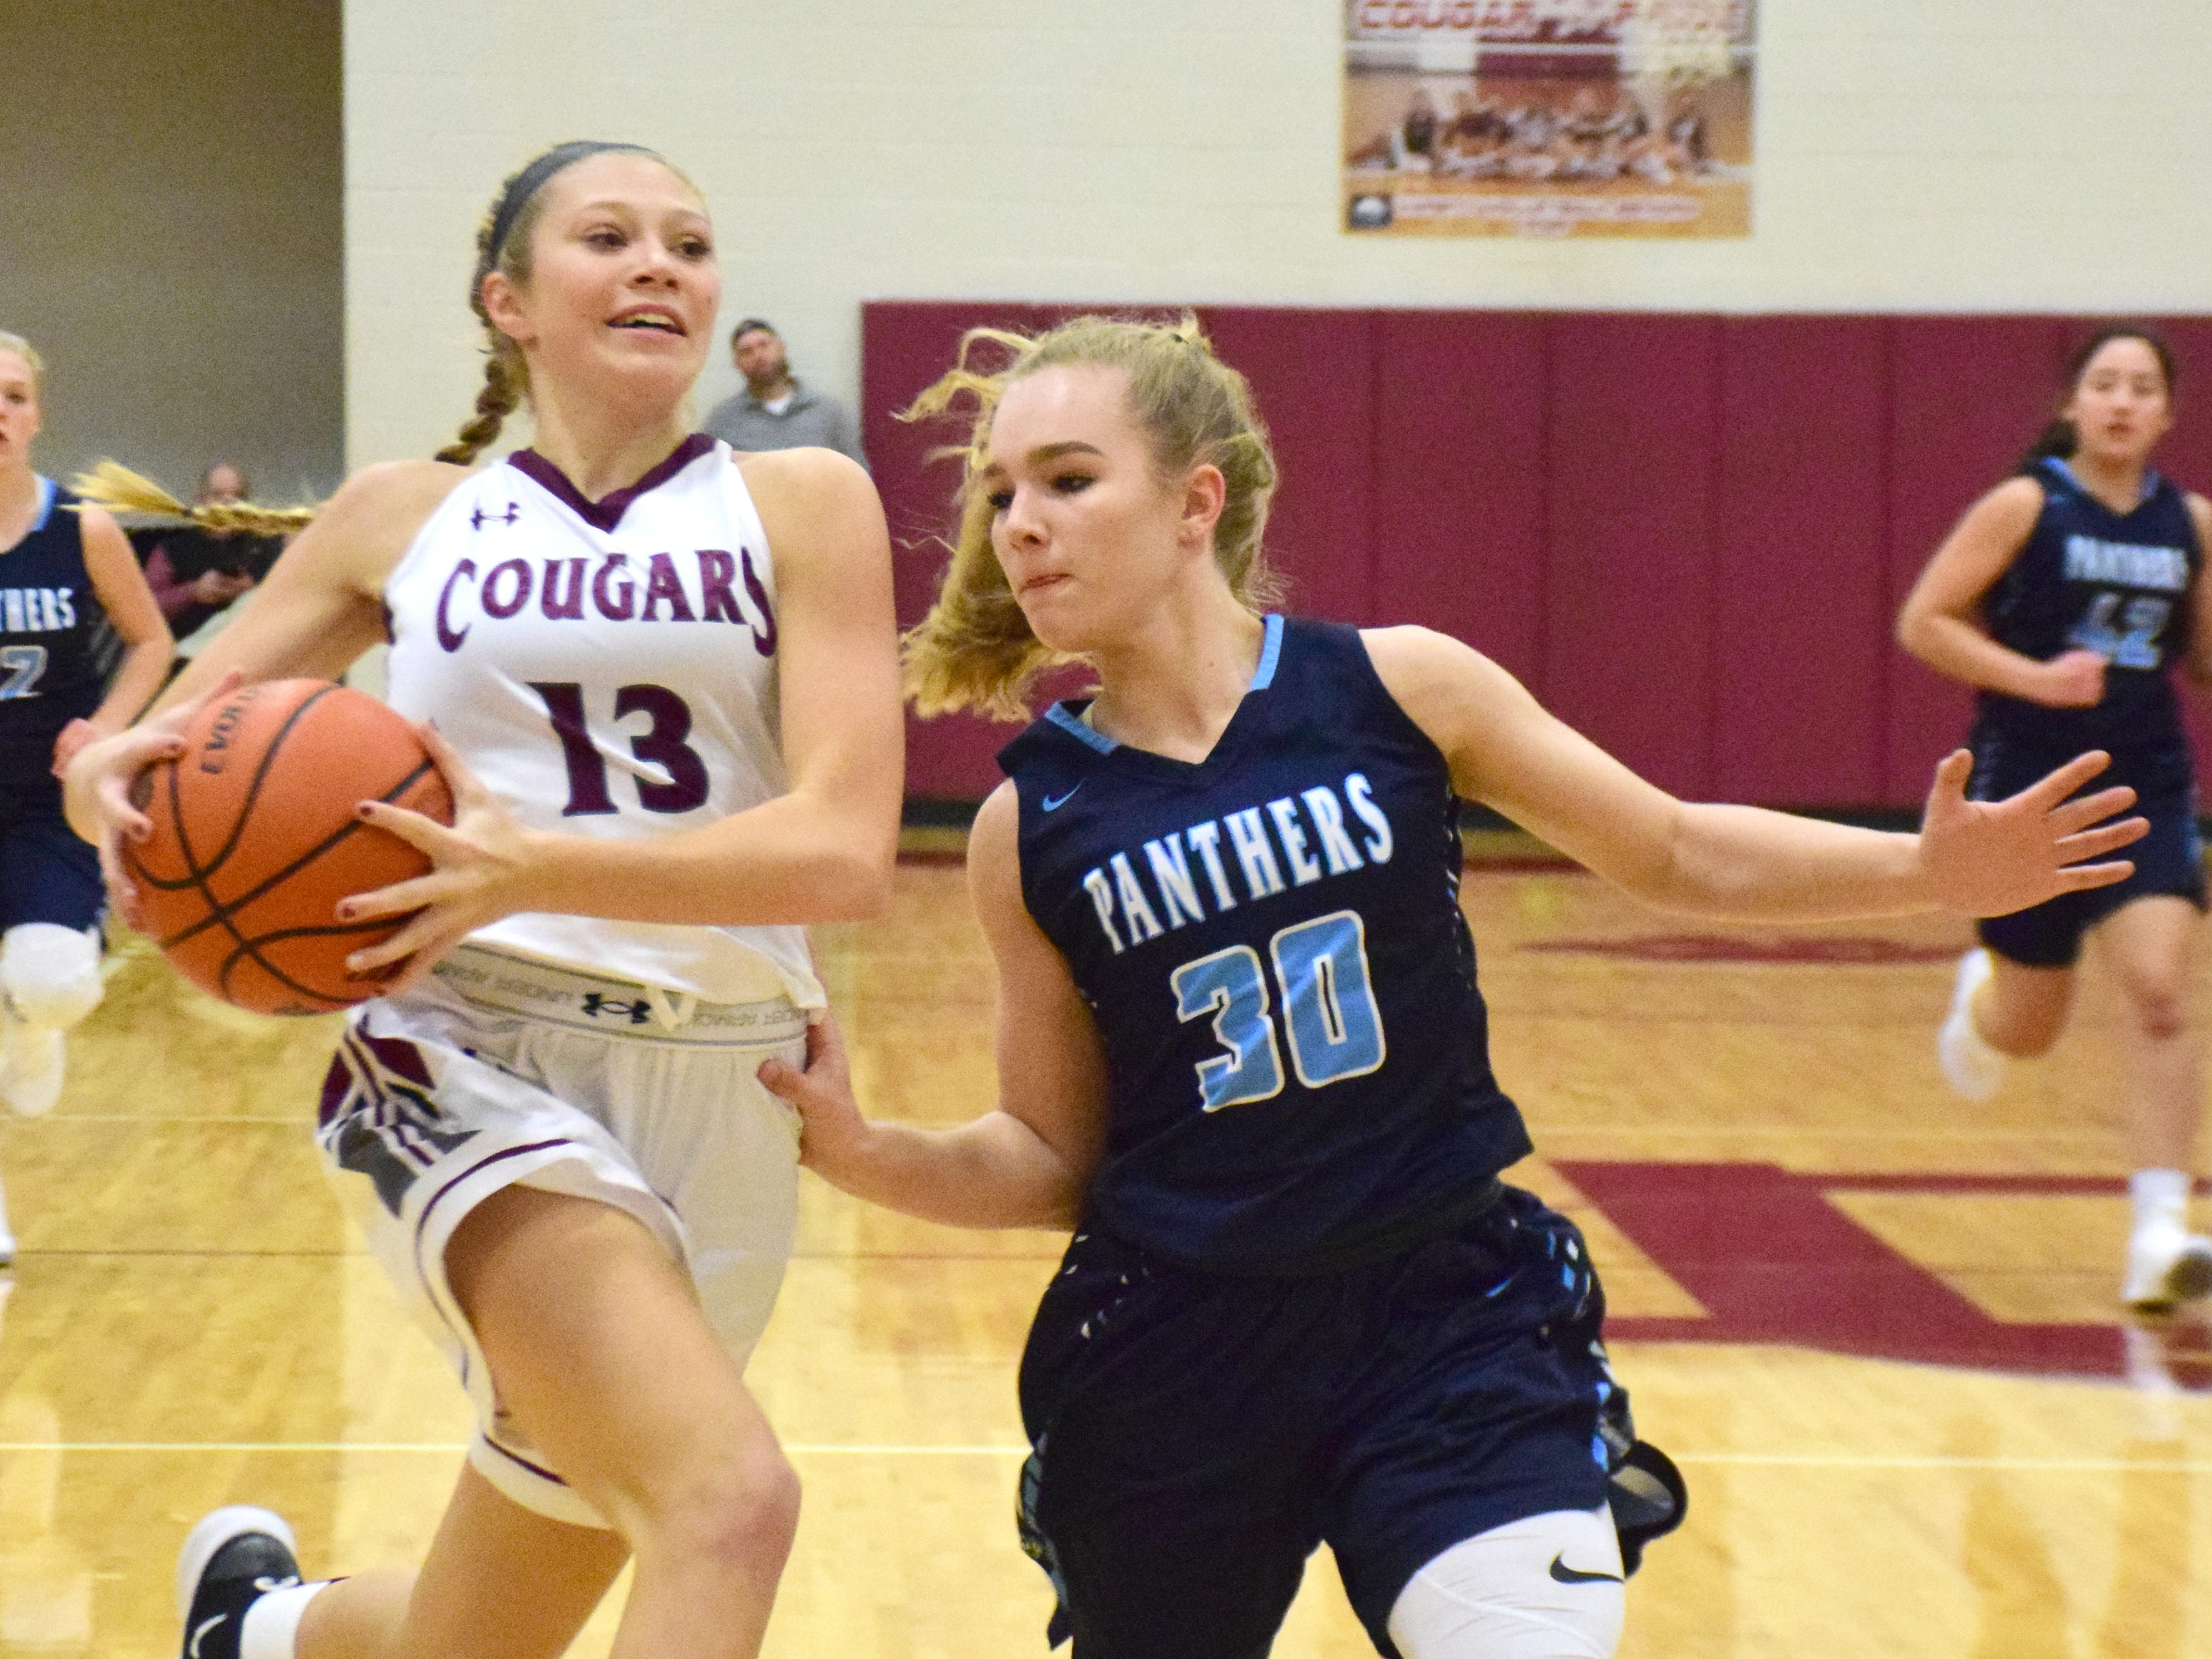 Stuarts Draft's Leah Wood drives to the basket against Page County's Caris Lucas during the first half of their Shenandoah District girls basketball game on Thursday, Jan. 10, 2019, at Stuarts Draft High School in Stuarts Draft, Va.